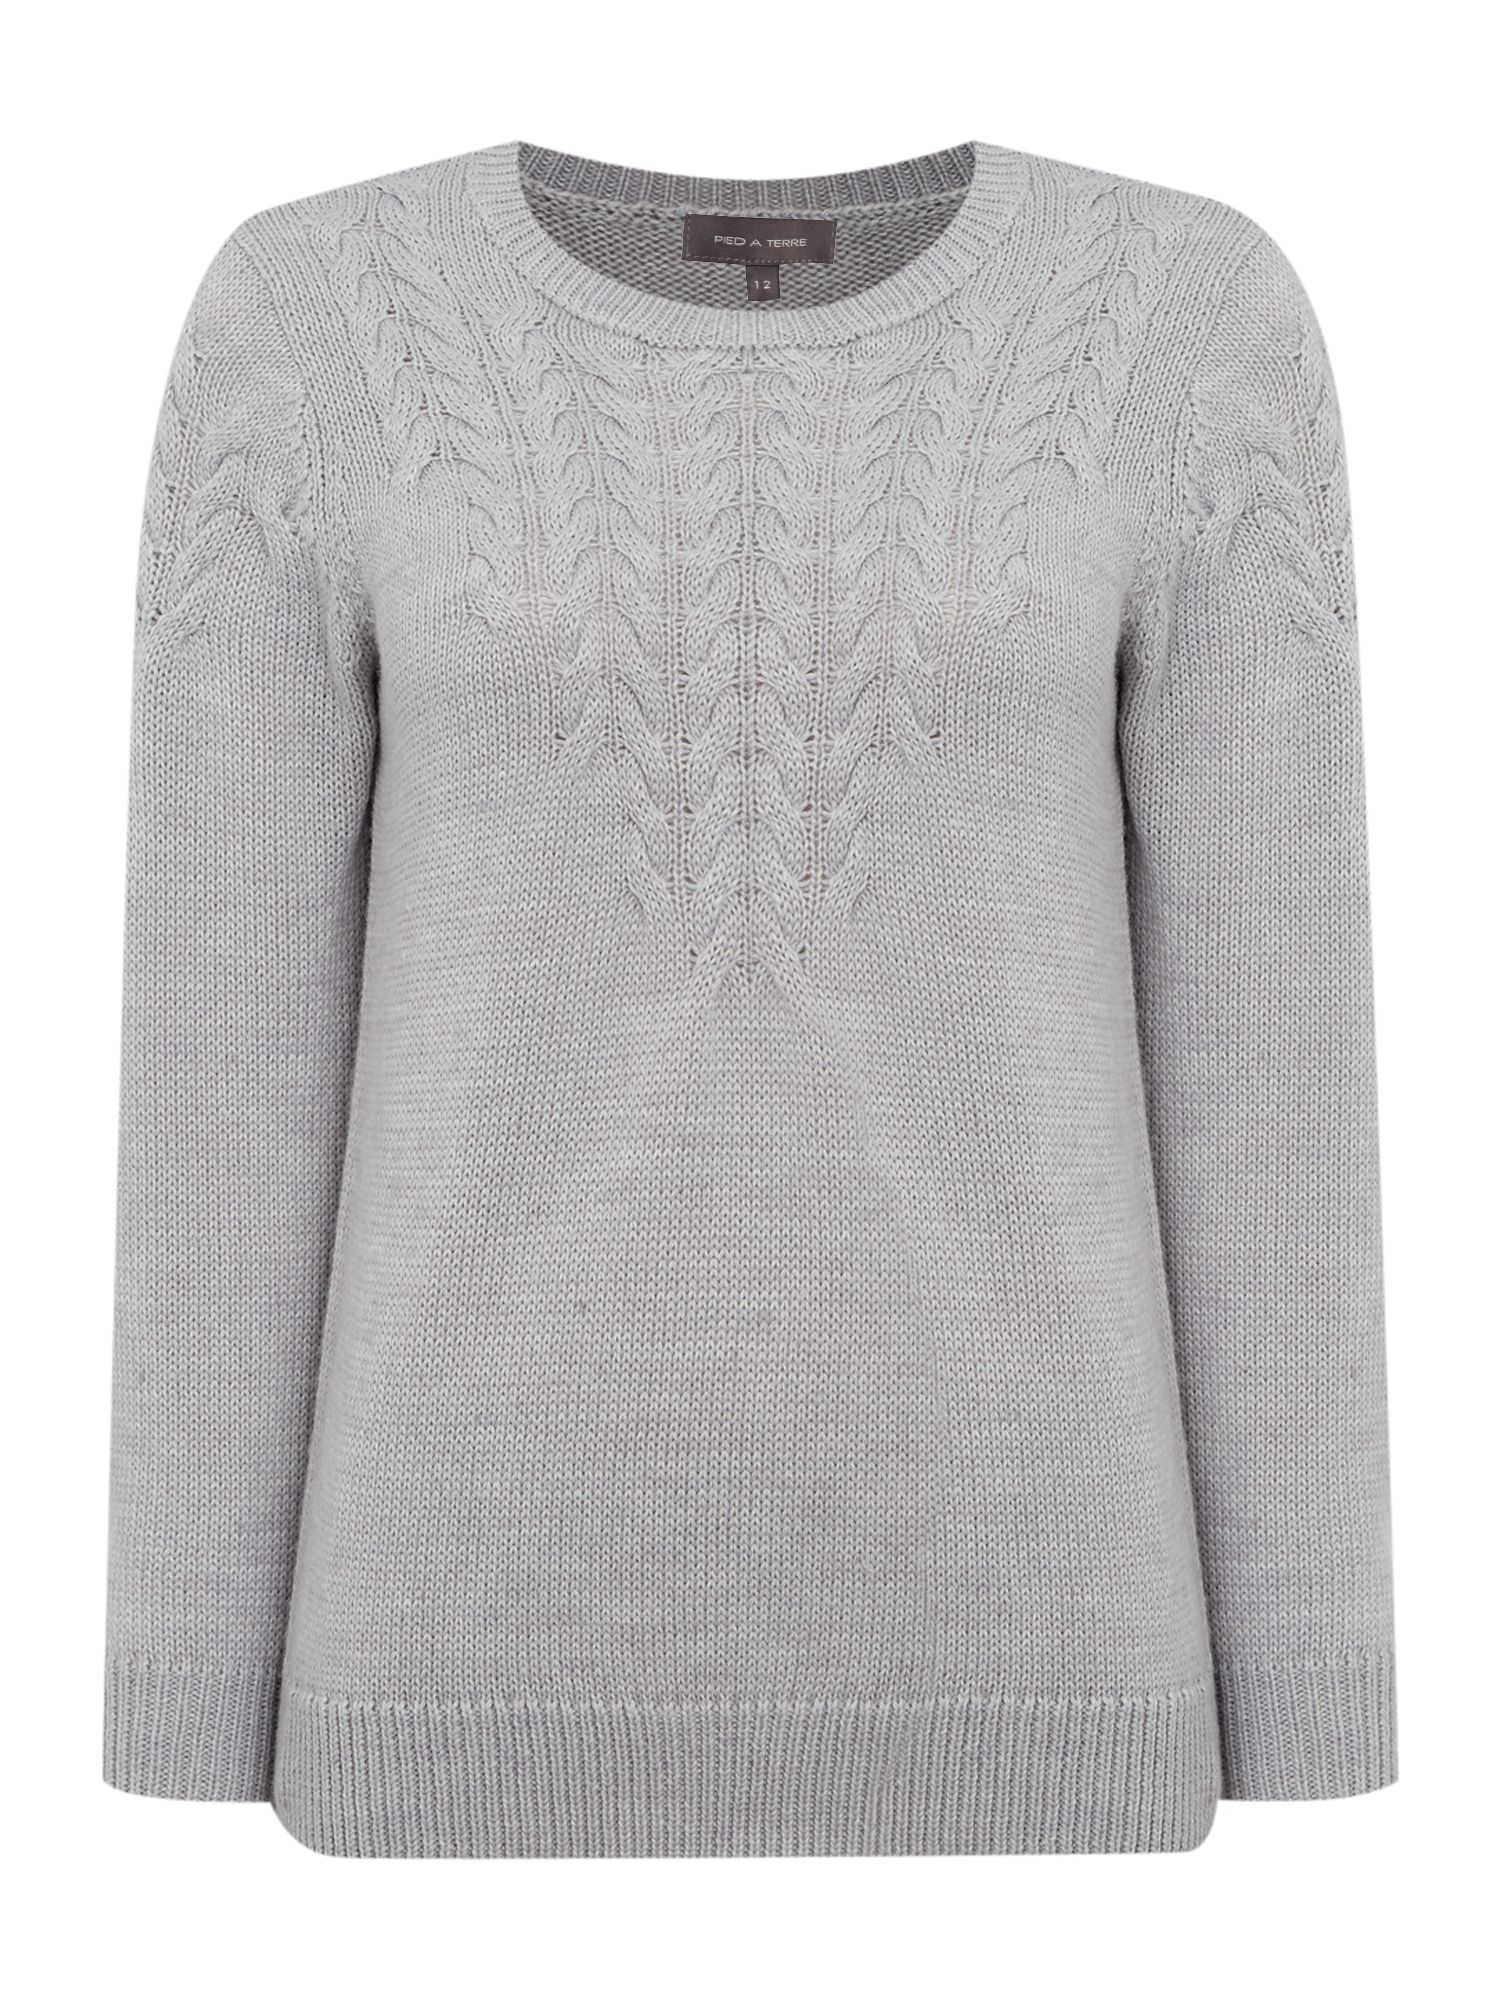 Pied a Terre Pied a Terre Cable knit, Grey